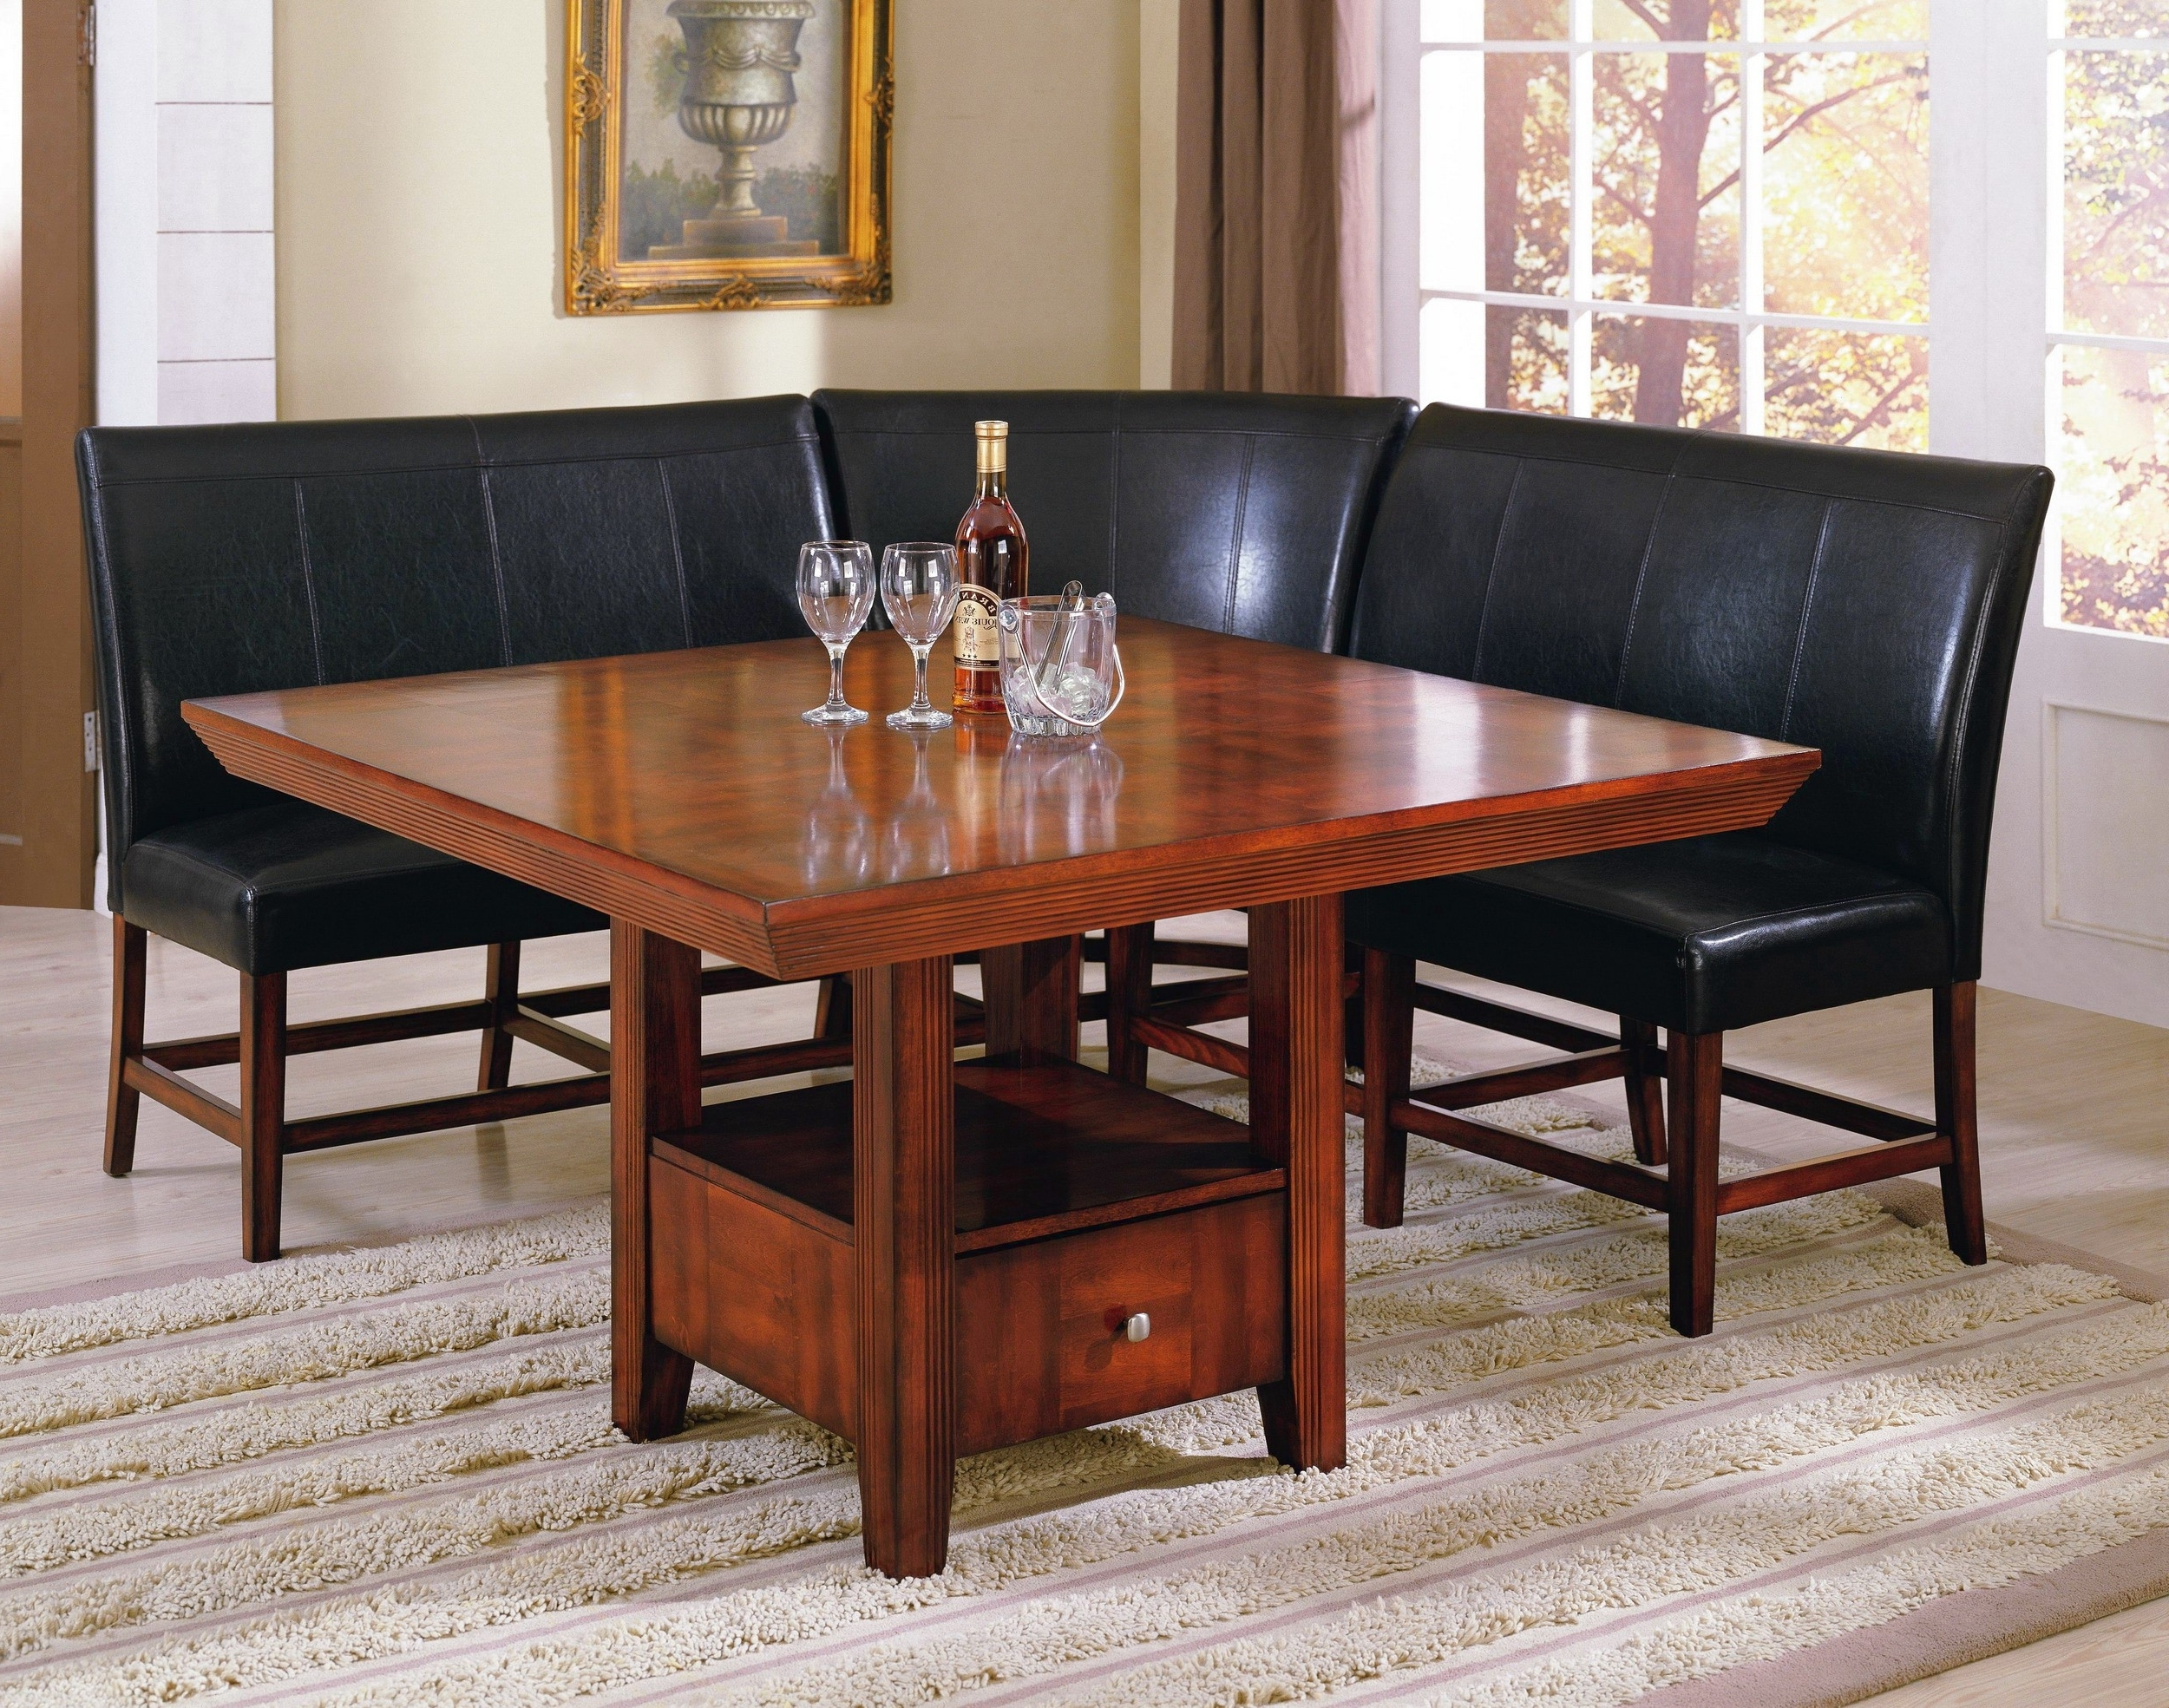 Black Leather L Shaped Bench With Back With Varnished Cherry Dining Regarding Current Bench With Back For Dining Tables (View 11 of 25)